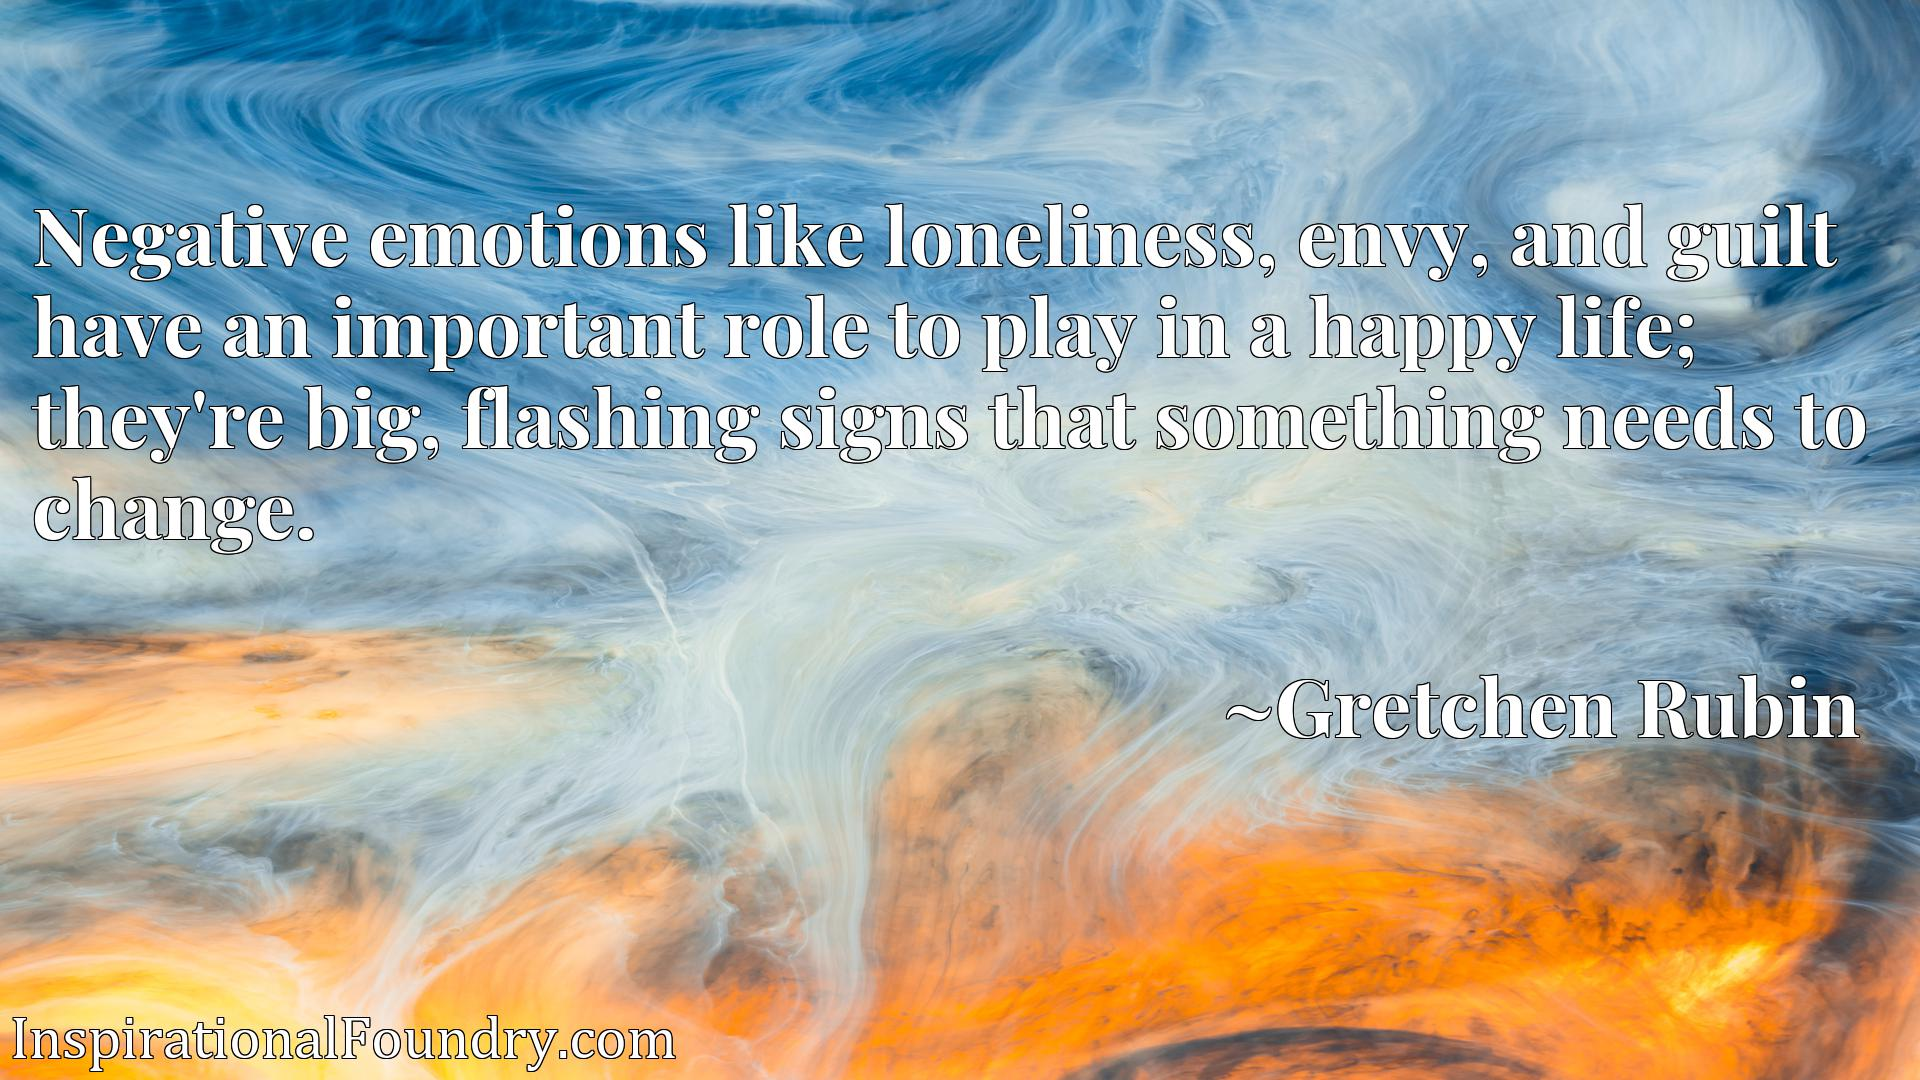 Negative emotions like loneliness, envy, and guilt have an important role to play in a happy life; they're big, flashing signs that something needs to change.